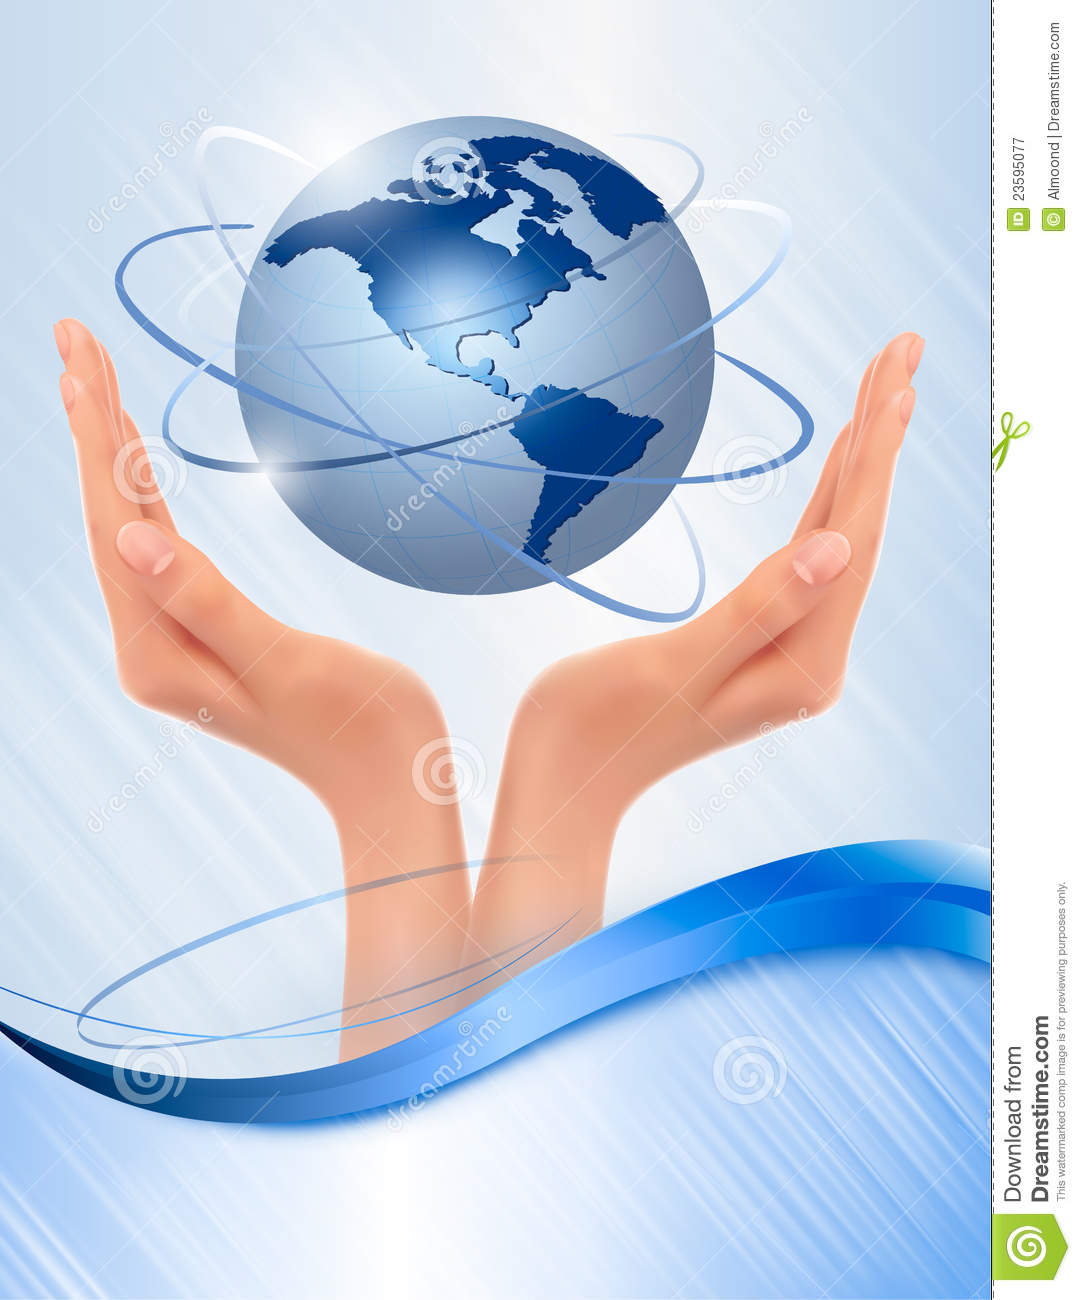 background with hands holding globe  royalty free stock